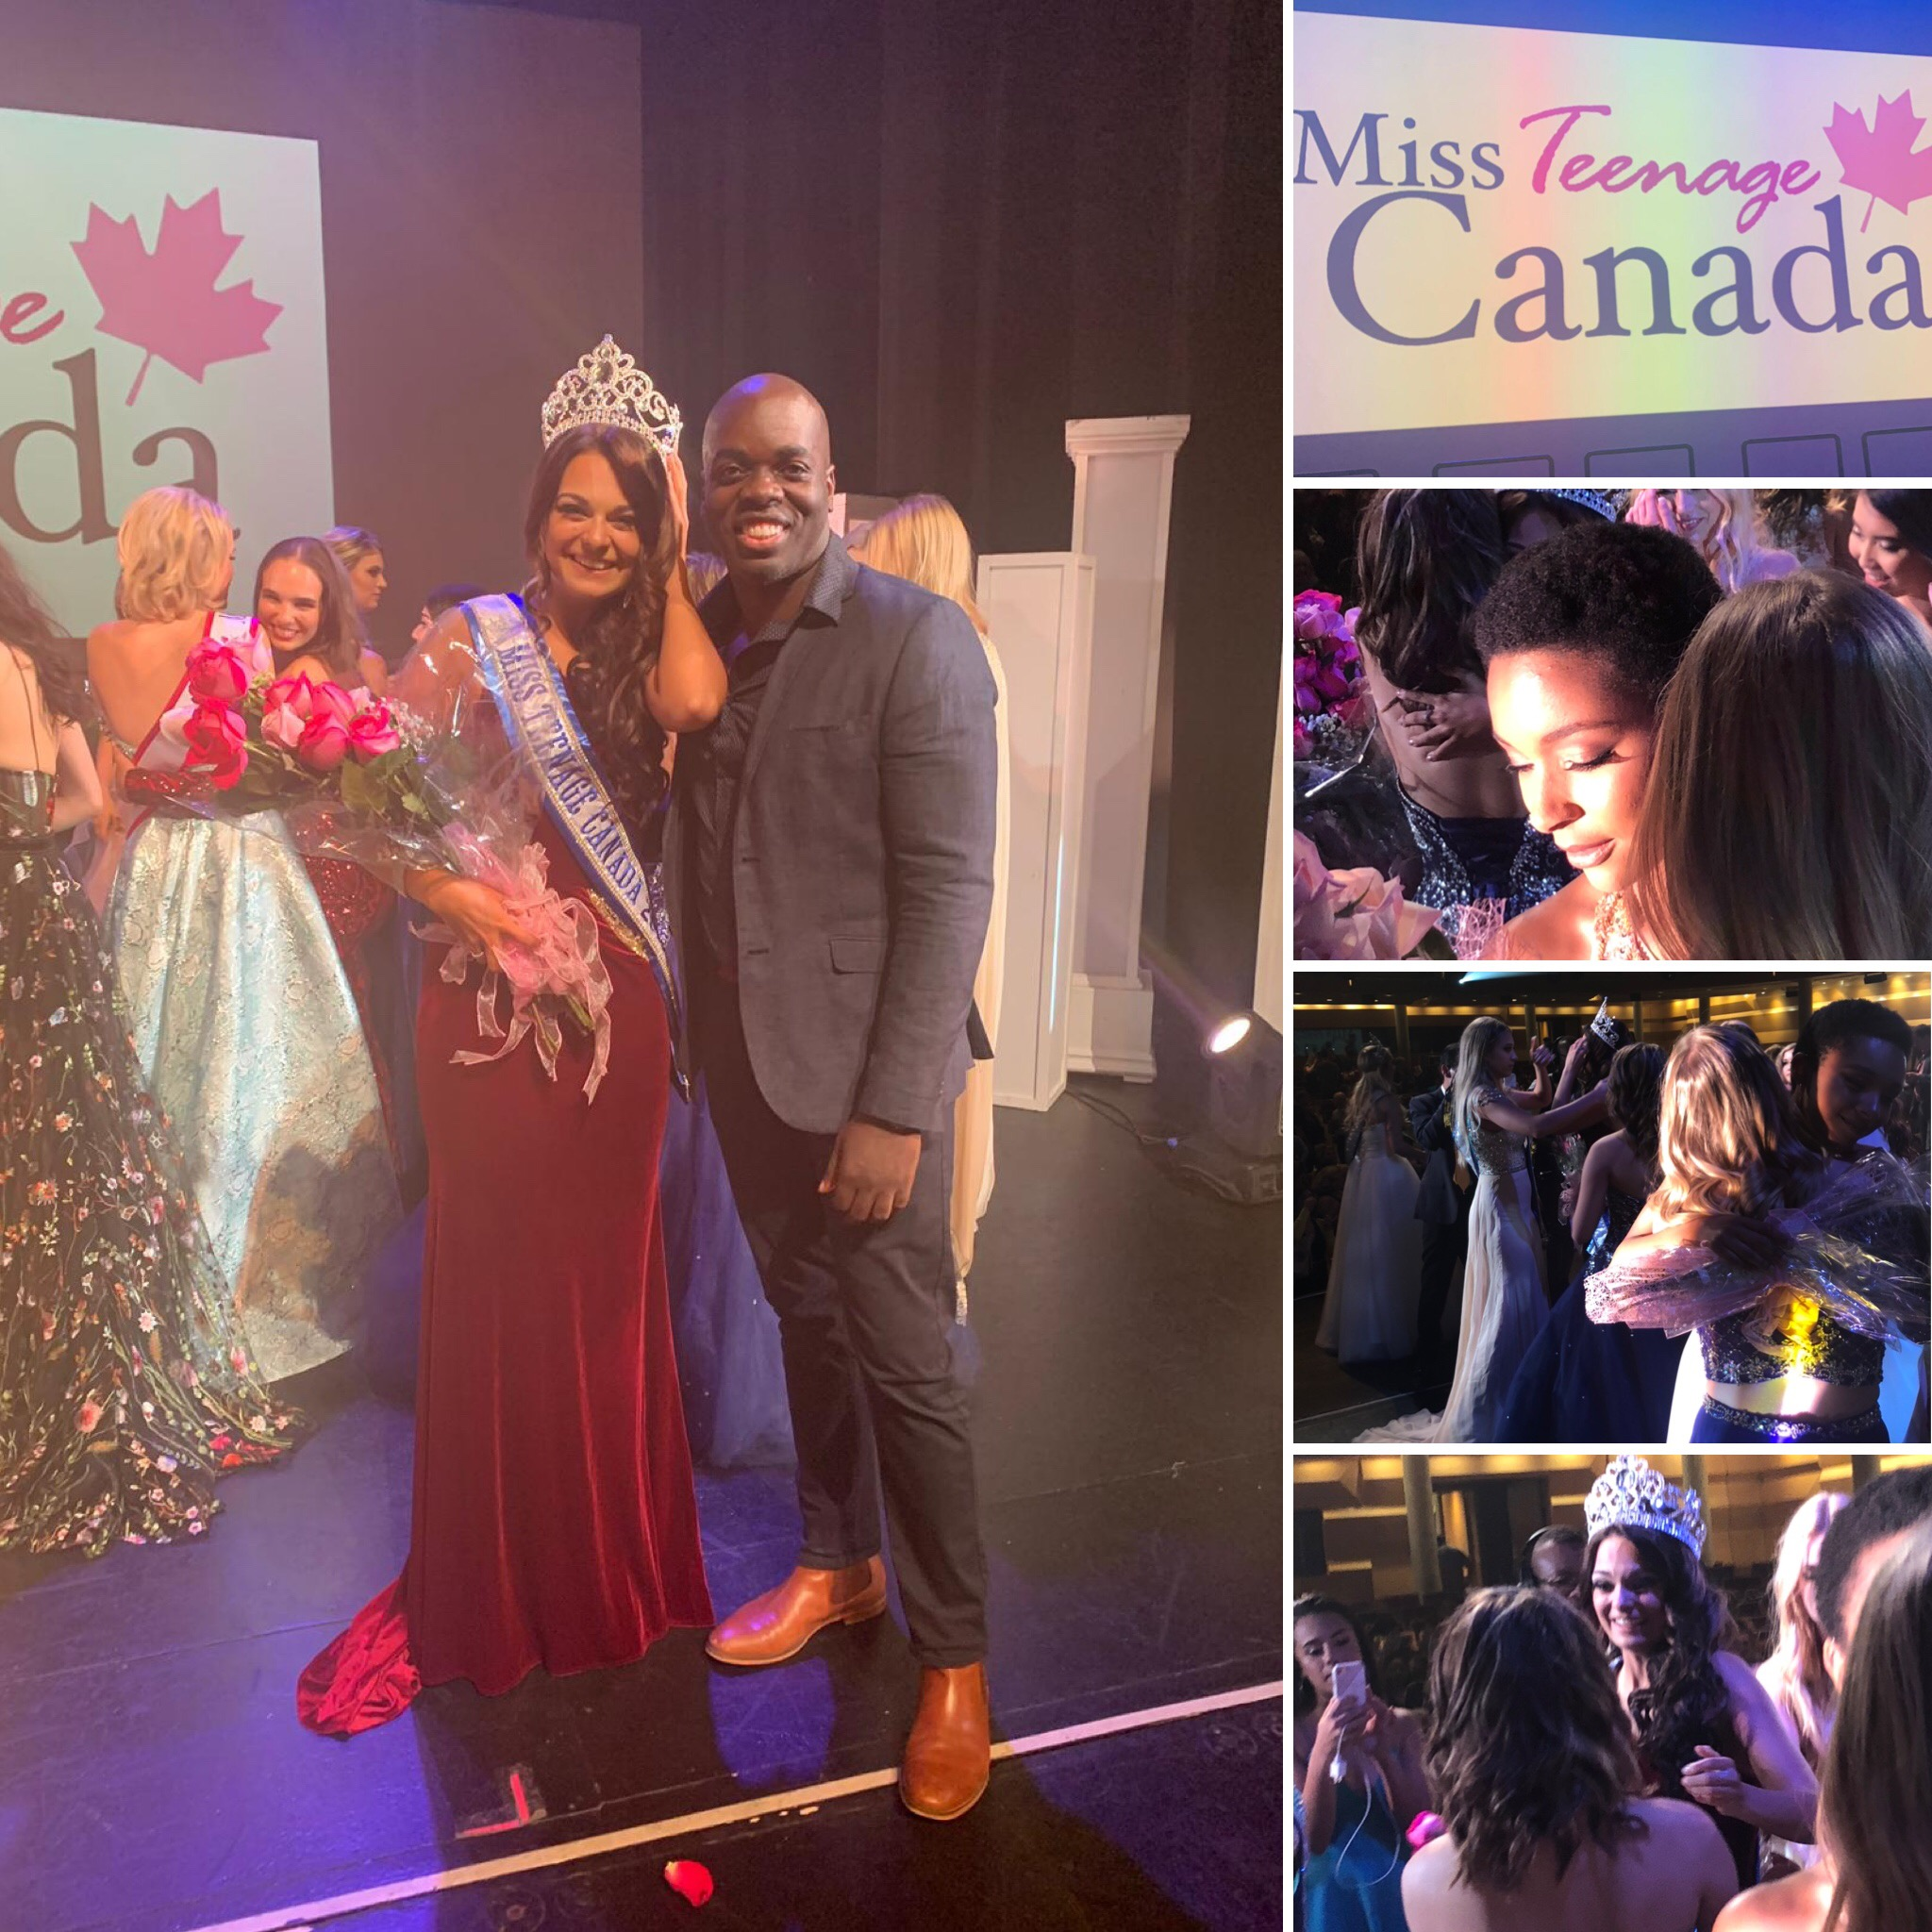 Congratulations to Miss Teenage Canada 2019